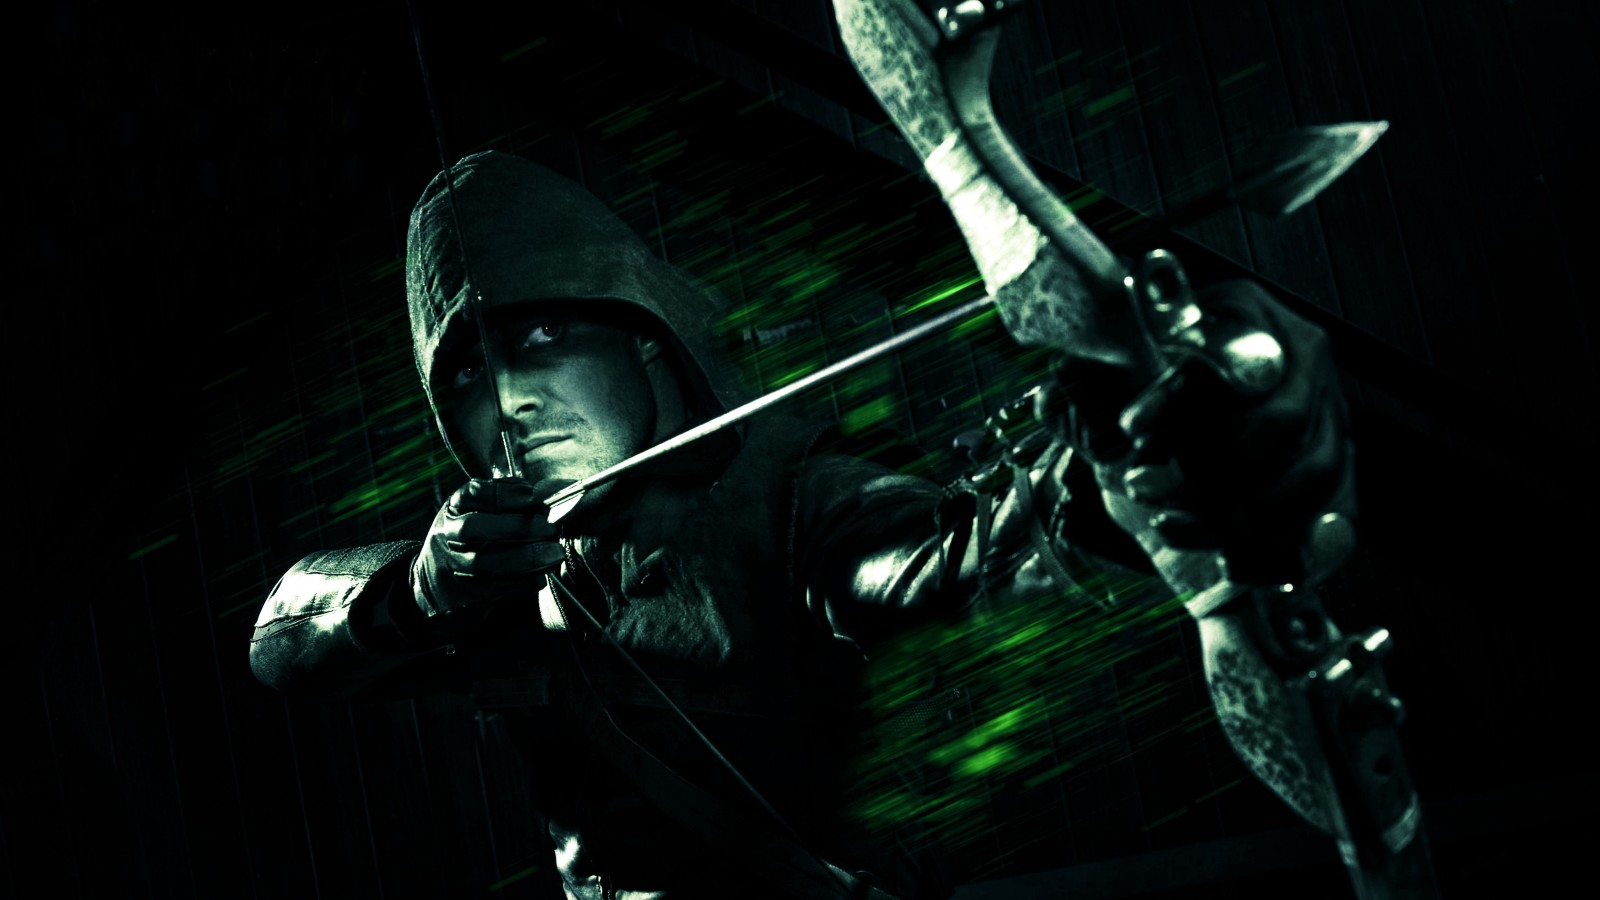 Cute Wallpaper Backgraounds Green Arrow 5k Wallpapers Hd Wallpapers Id 25330